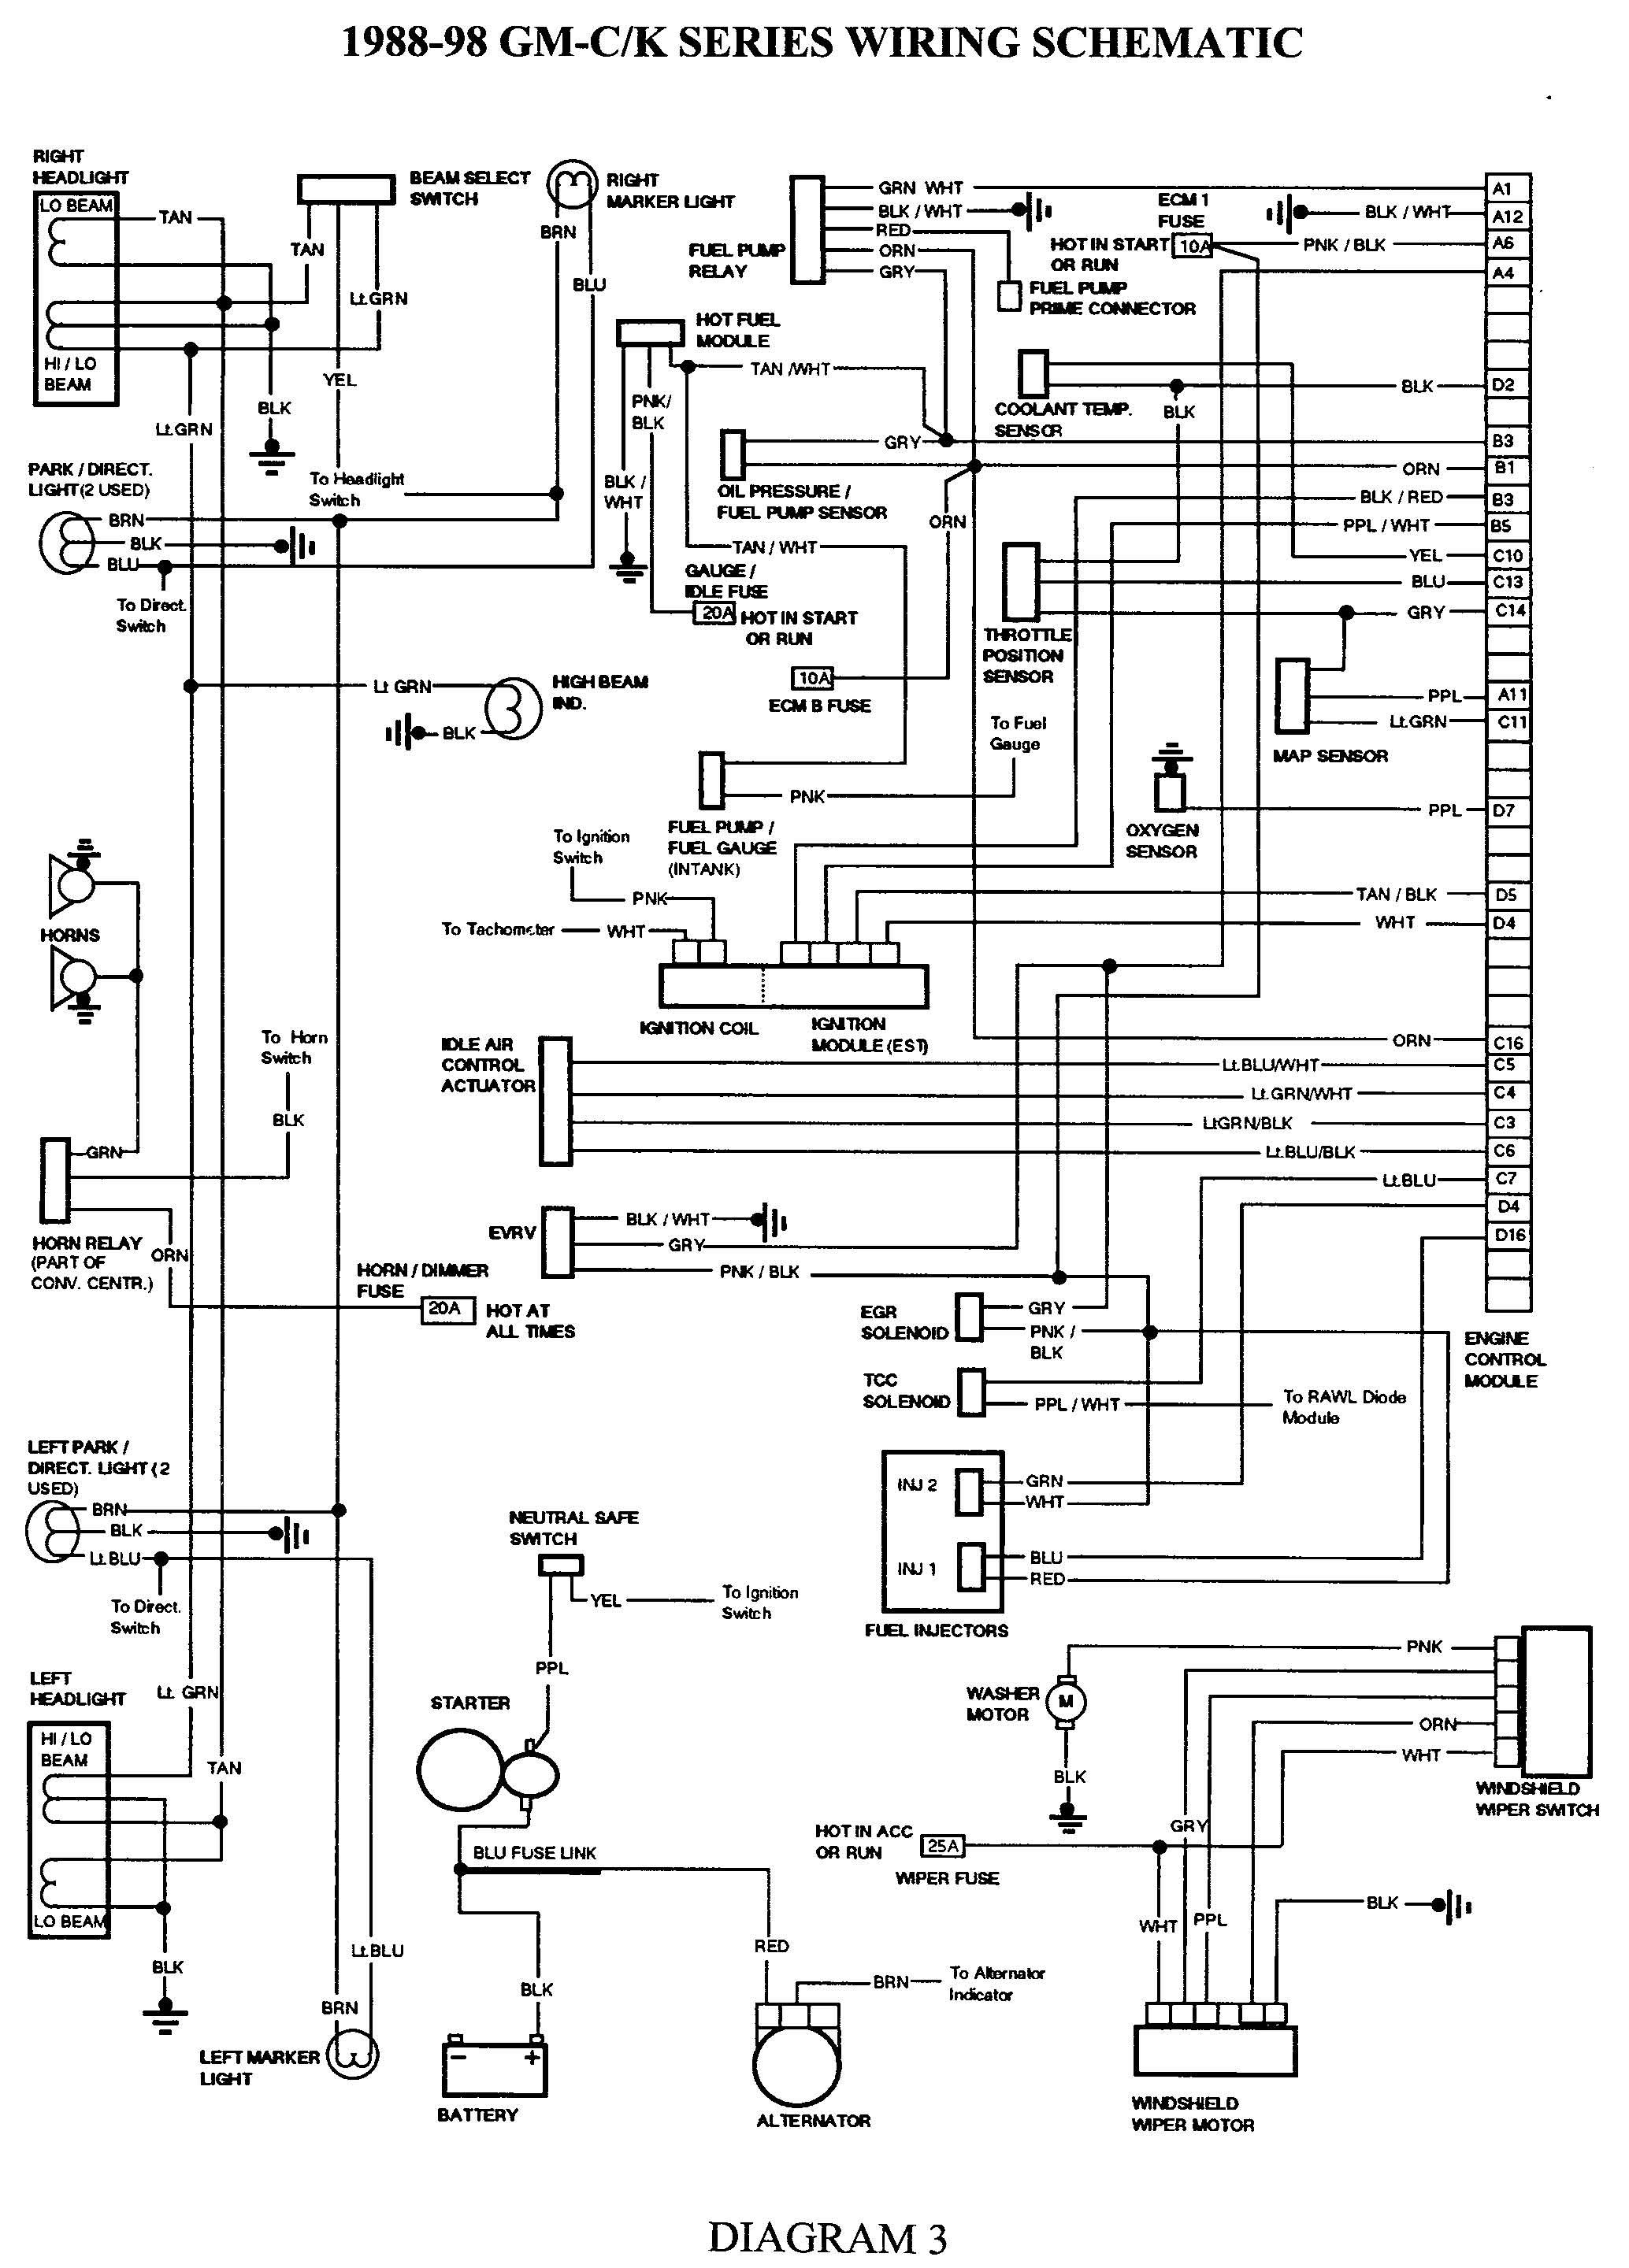 gmc truck wiring diagrams on gm wiring harness diagram 88 98 kc 1998 chevy cavalier wiring diagram 1994 chevy truck wiring schematics [ 2068 x 2880 Pixel ]